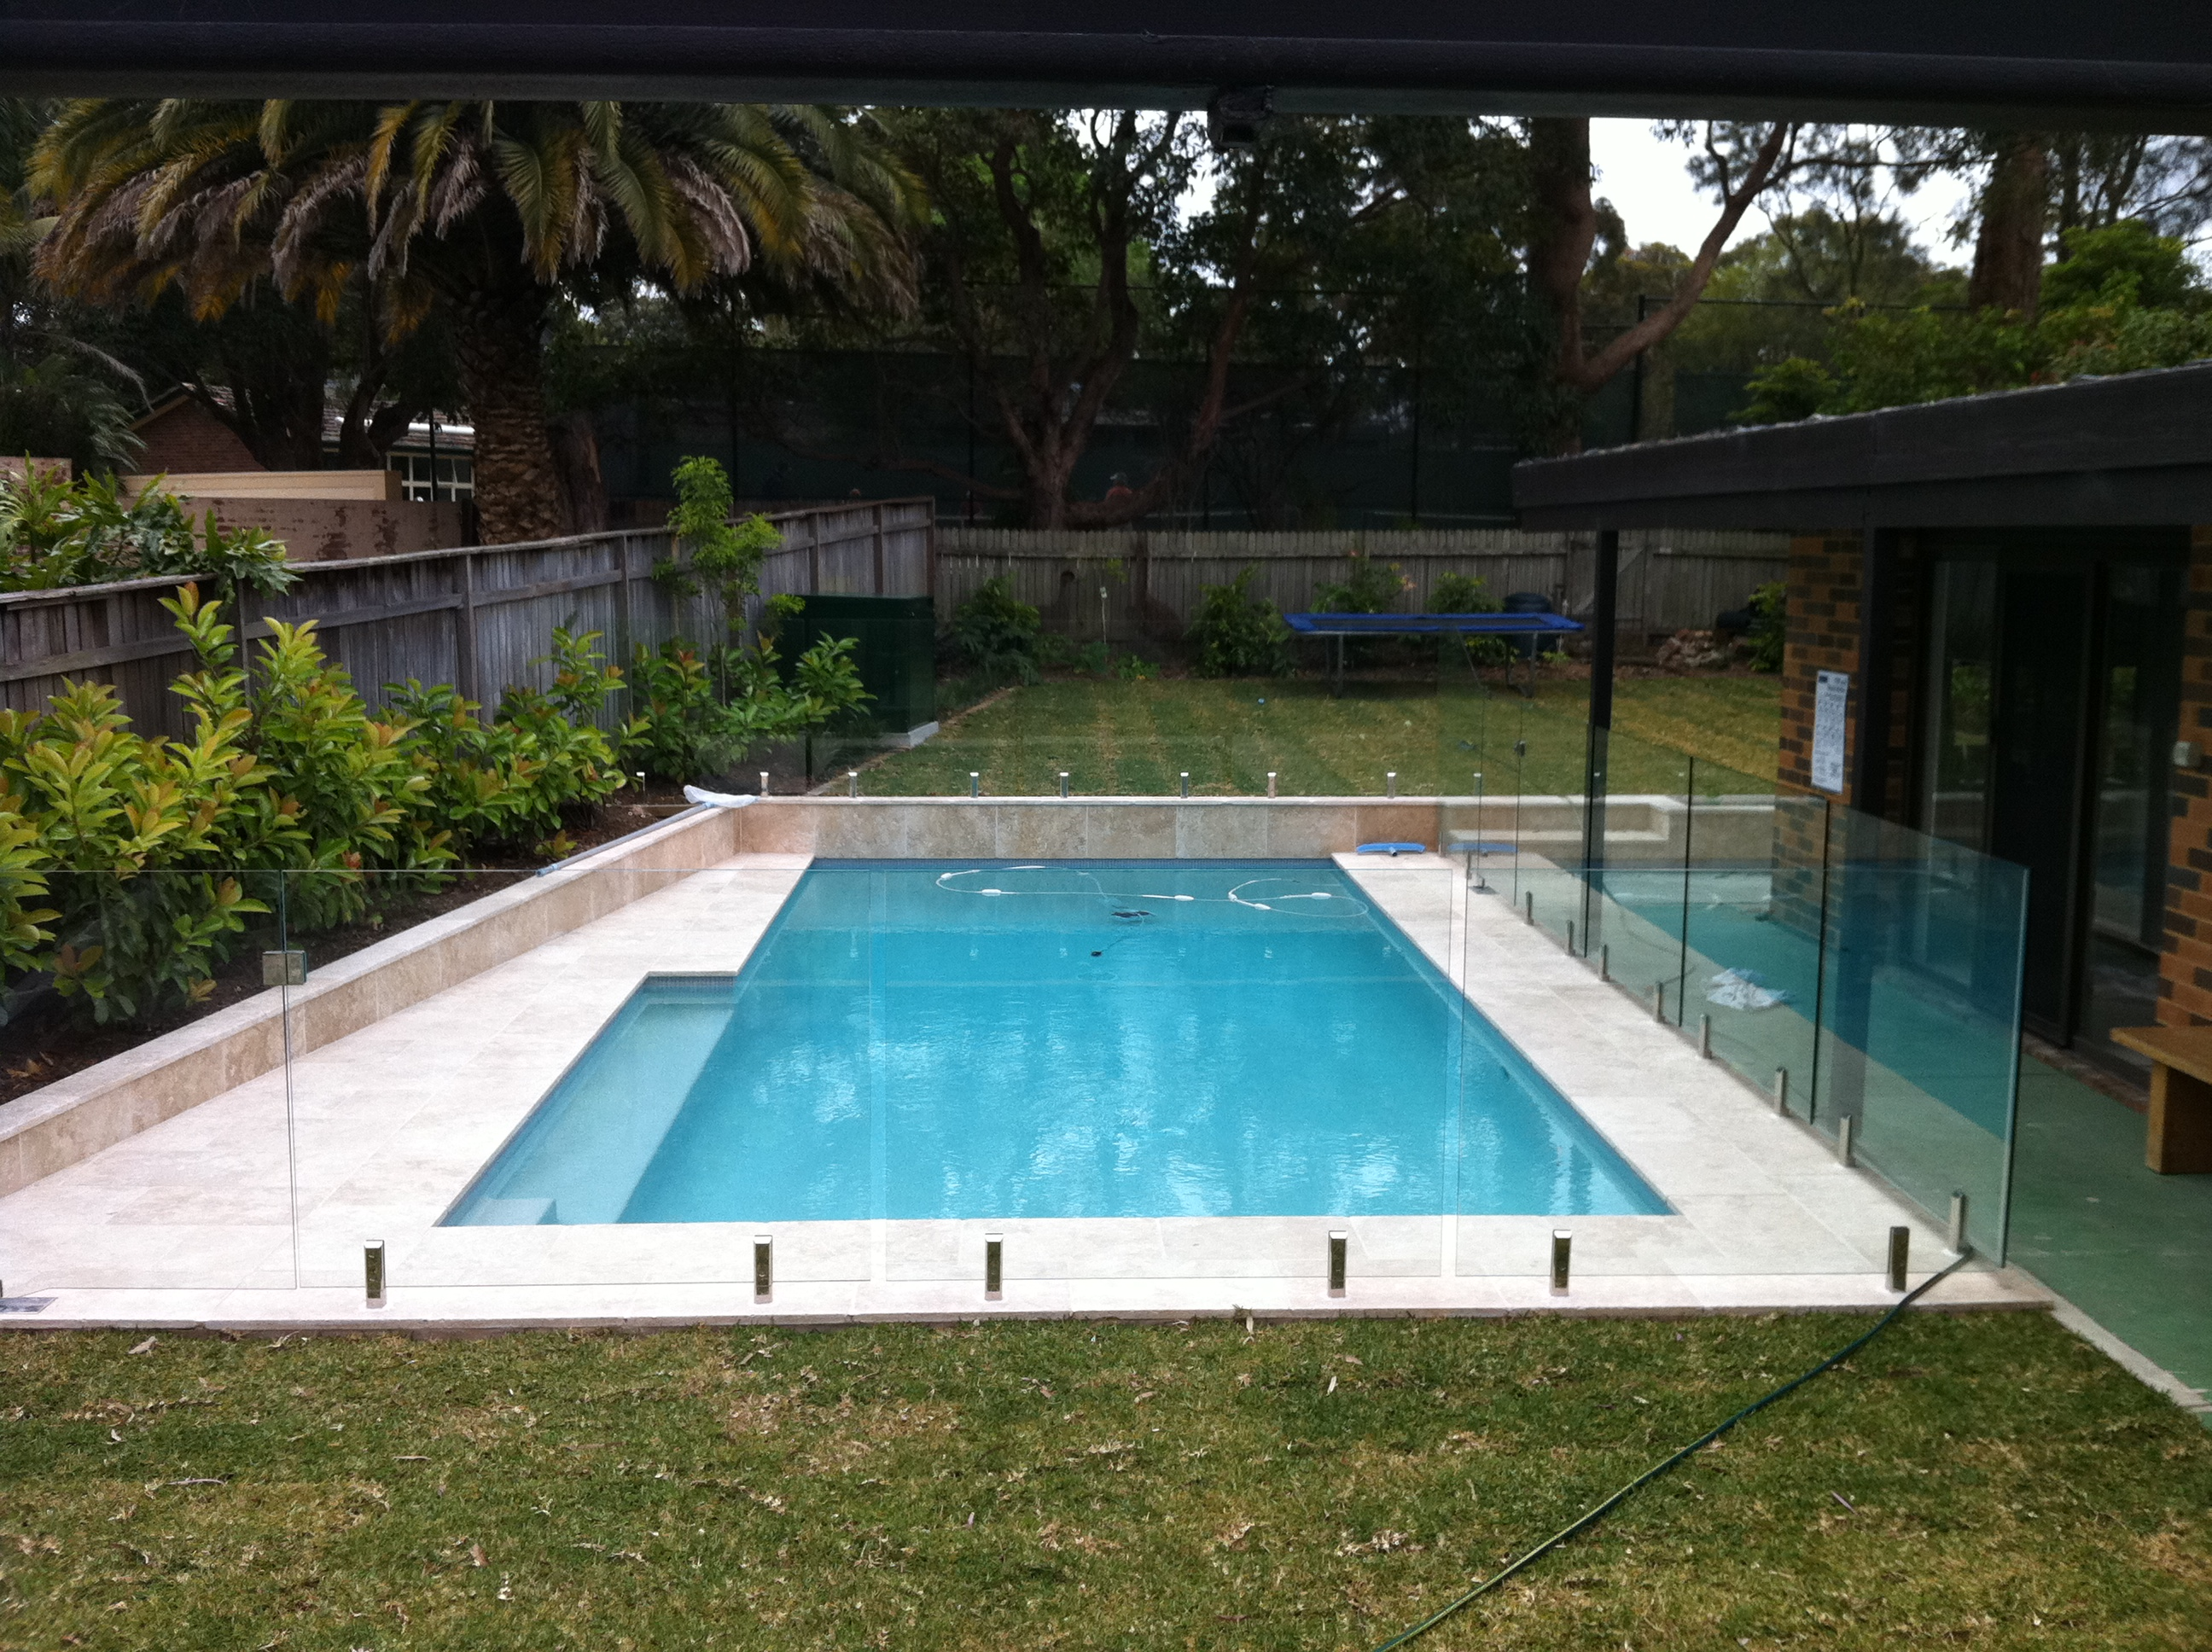 Domain pools sydney pool builder sydney sydney pool for Pool design sydney